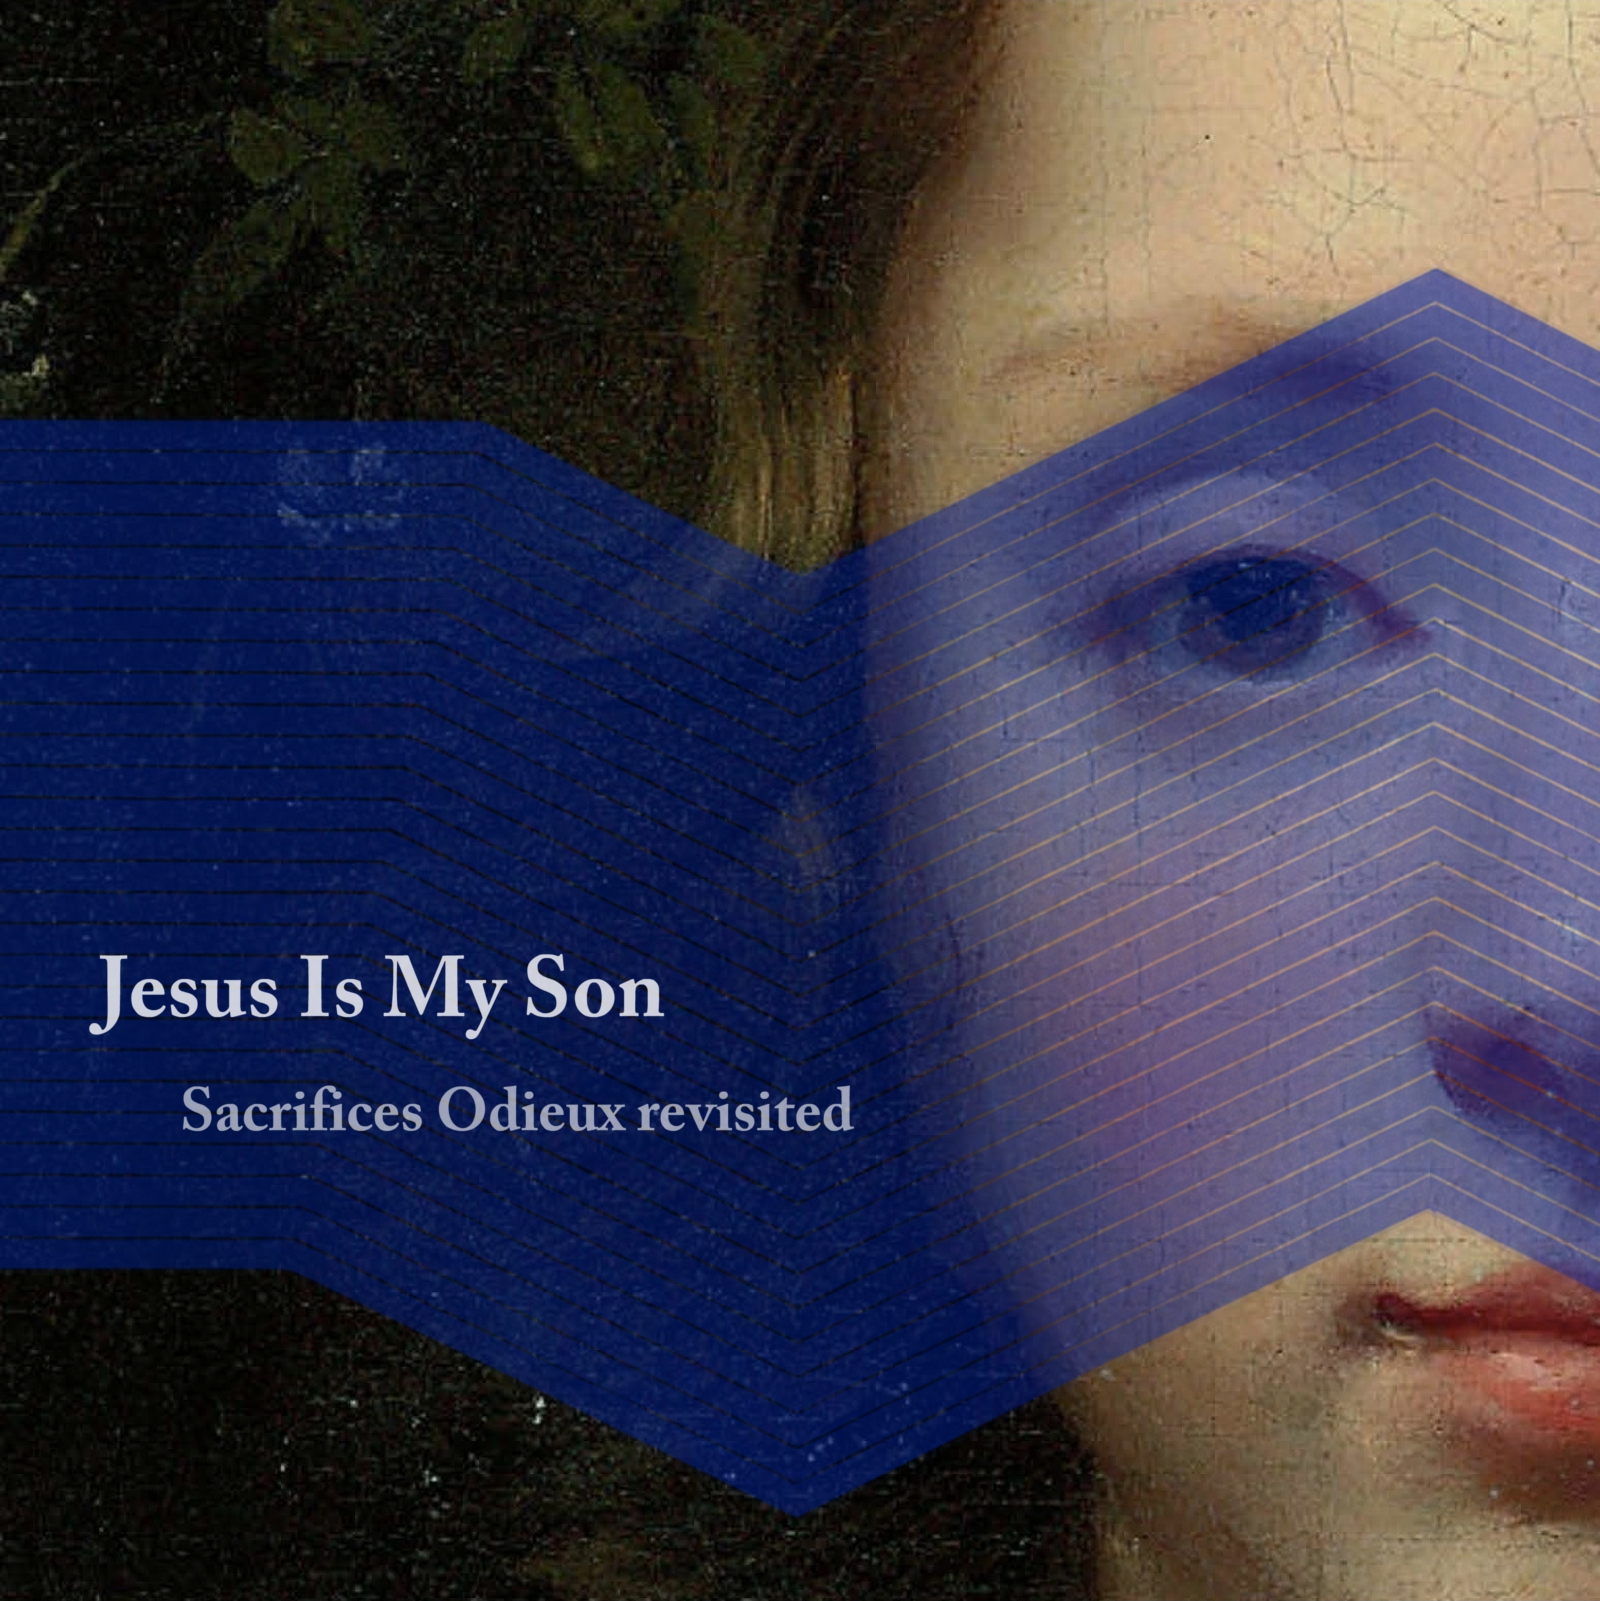 JESUS IS MY SON - SACRIFICES ODIEUX (REVISITED)